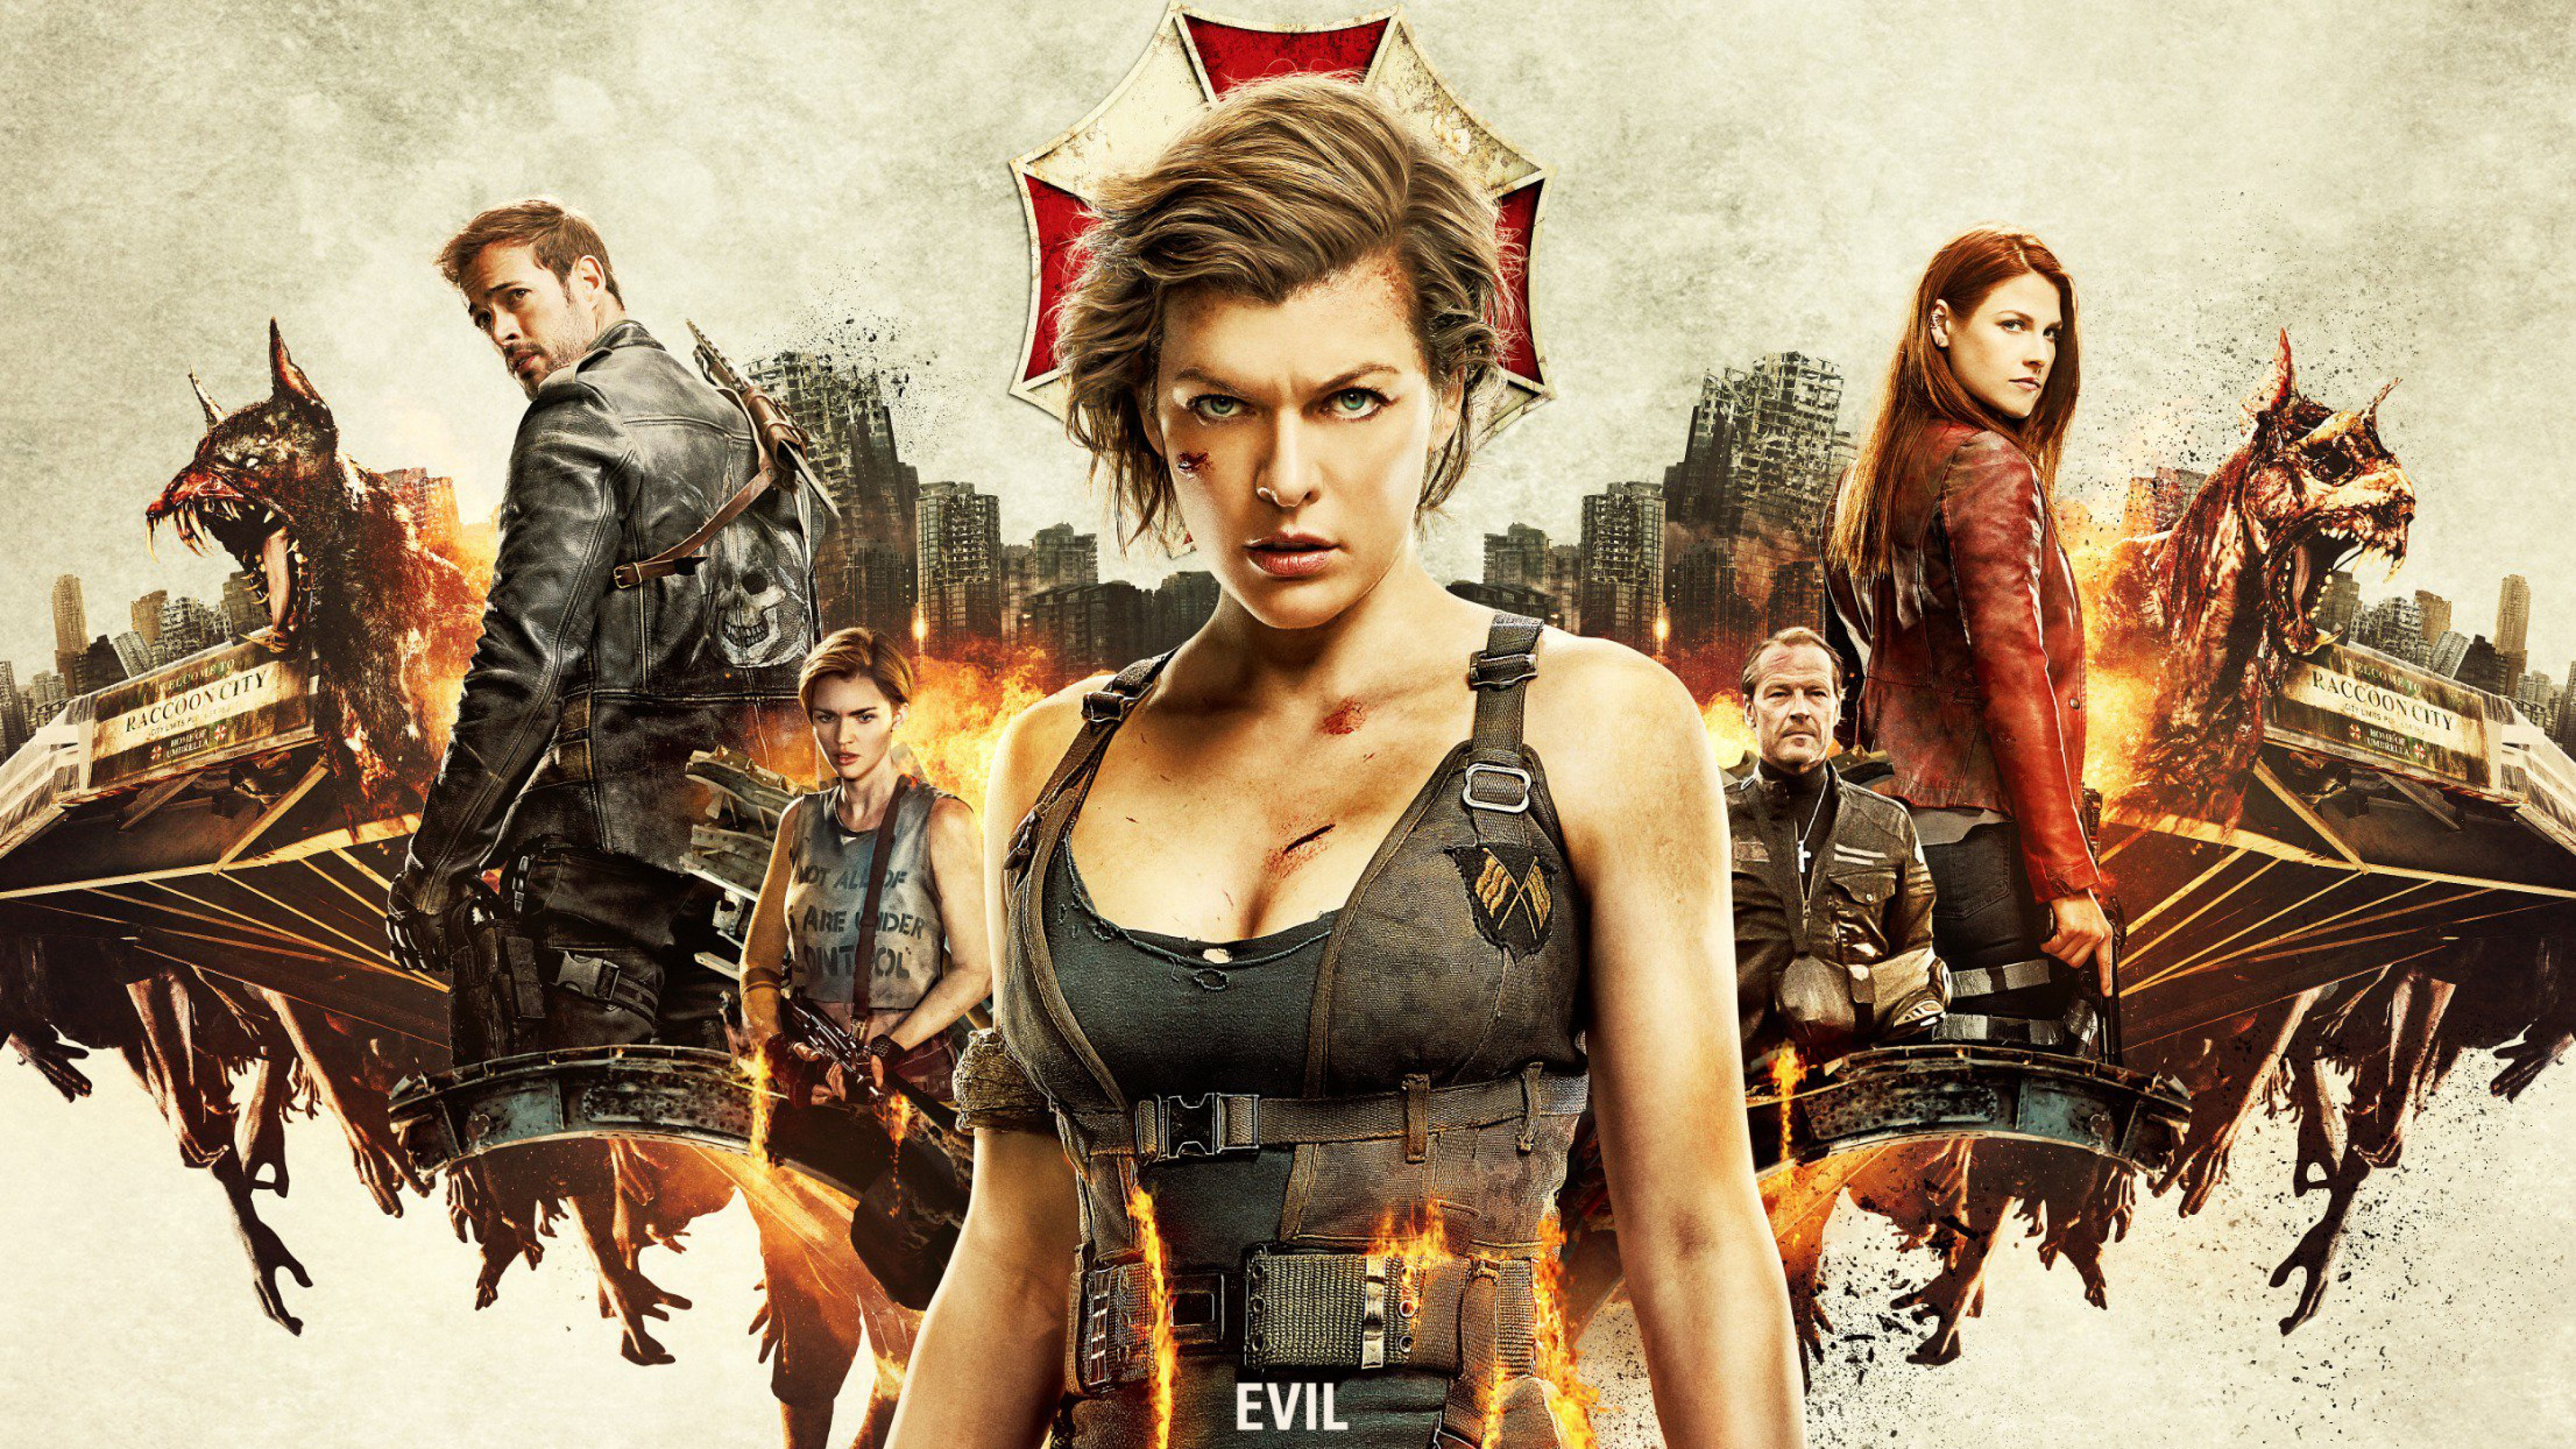 Resident evil the final chapter 4k 2016 movie hd movies 4k wallpapers images backgrounds - Resident evil final chapter 4k ...